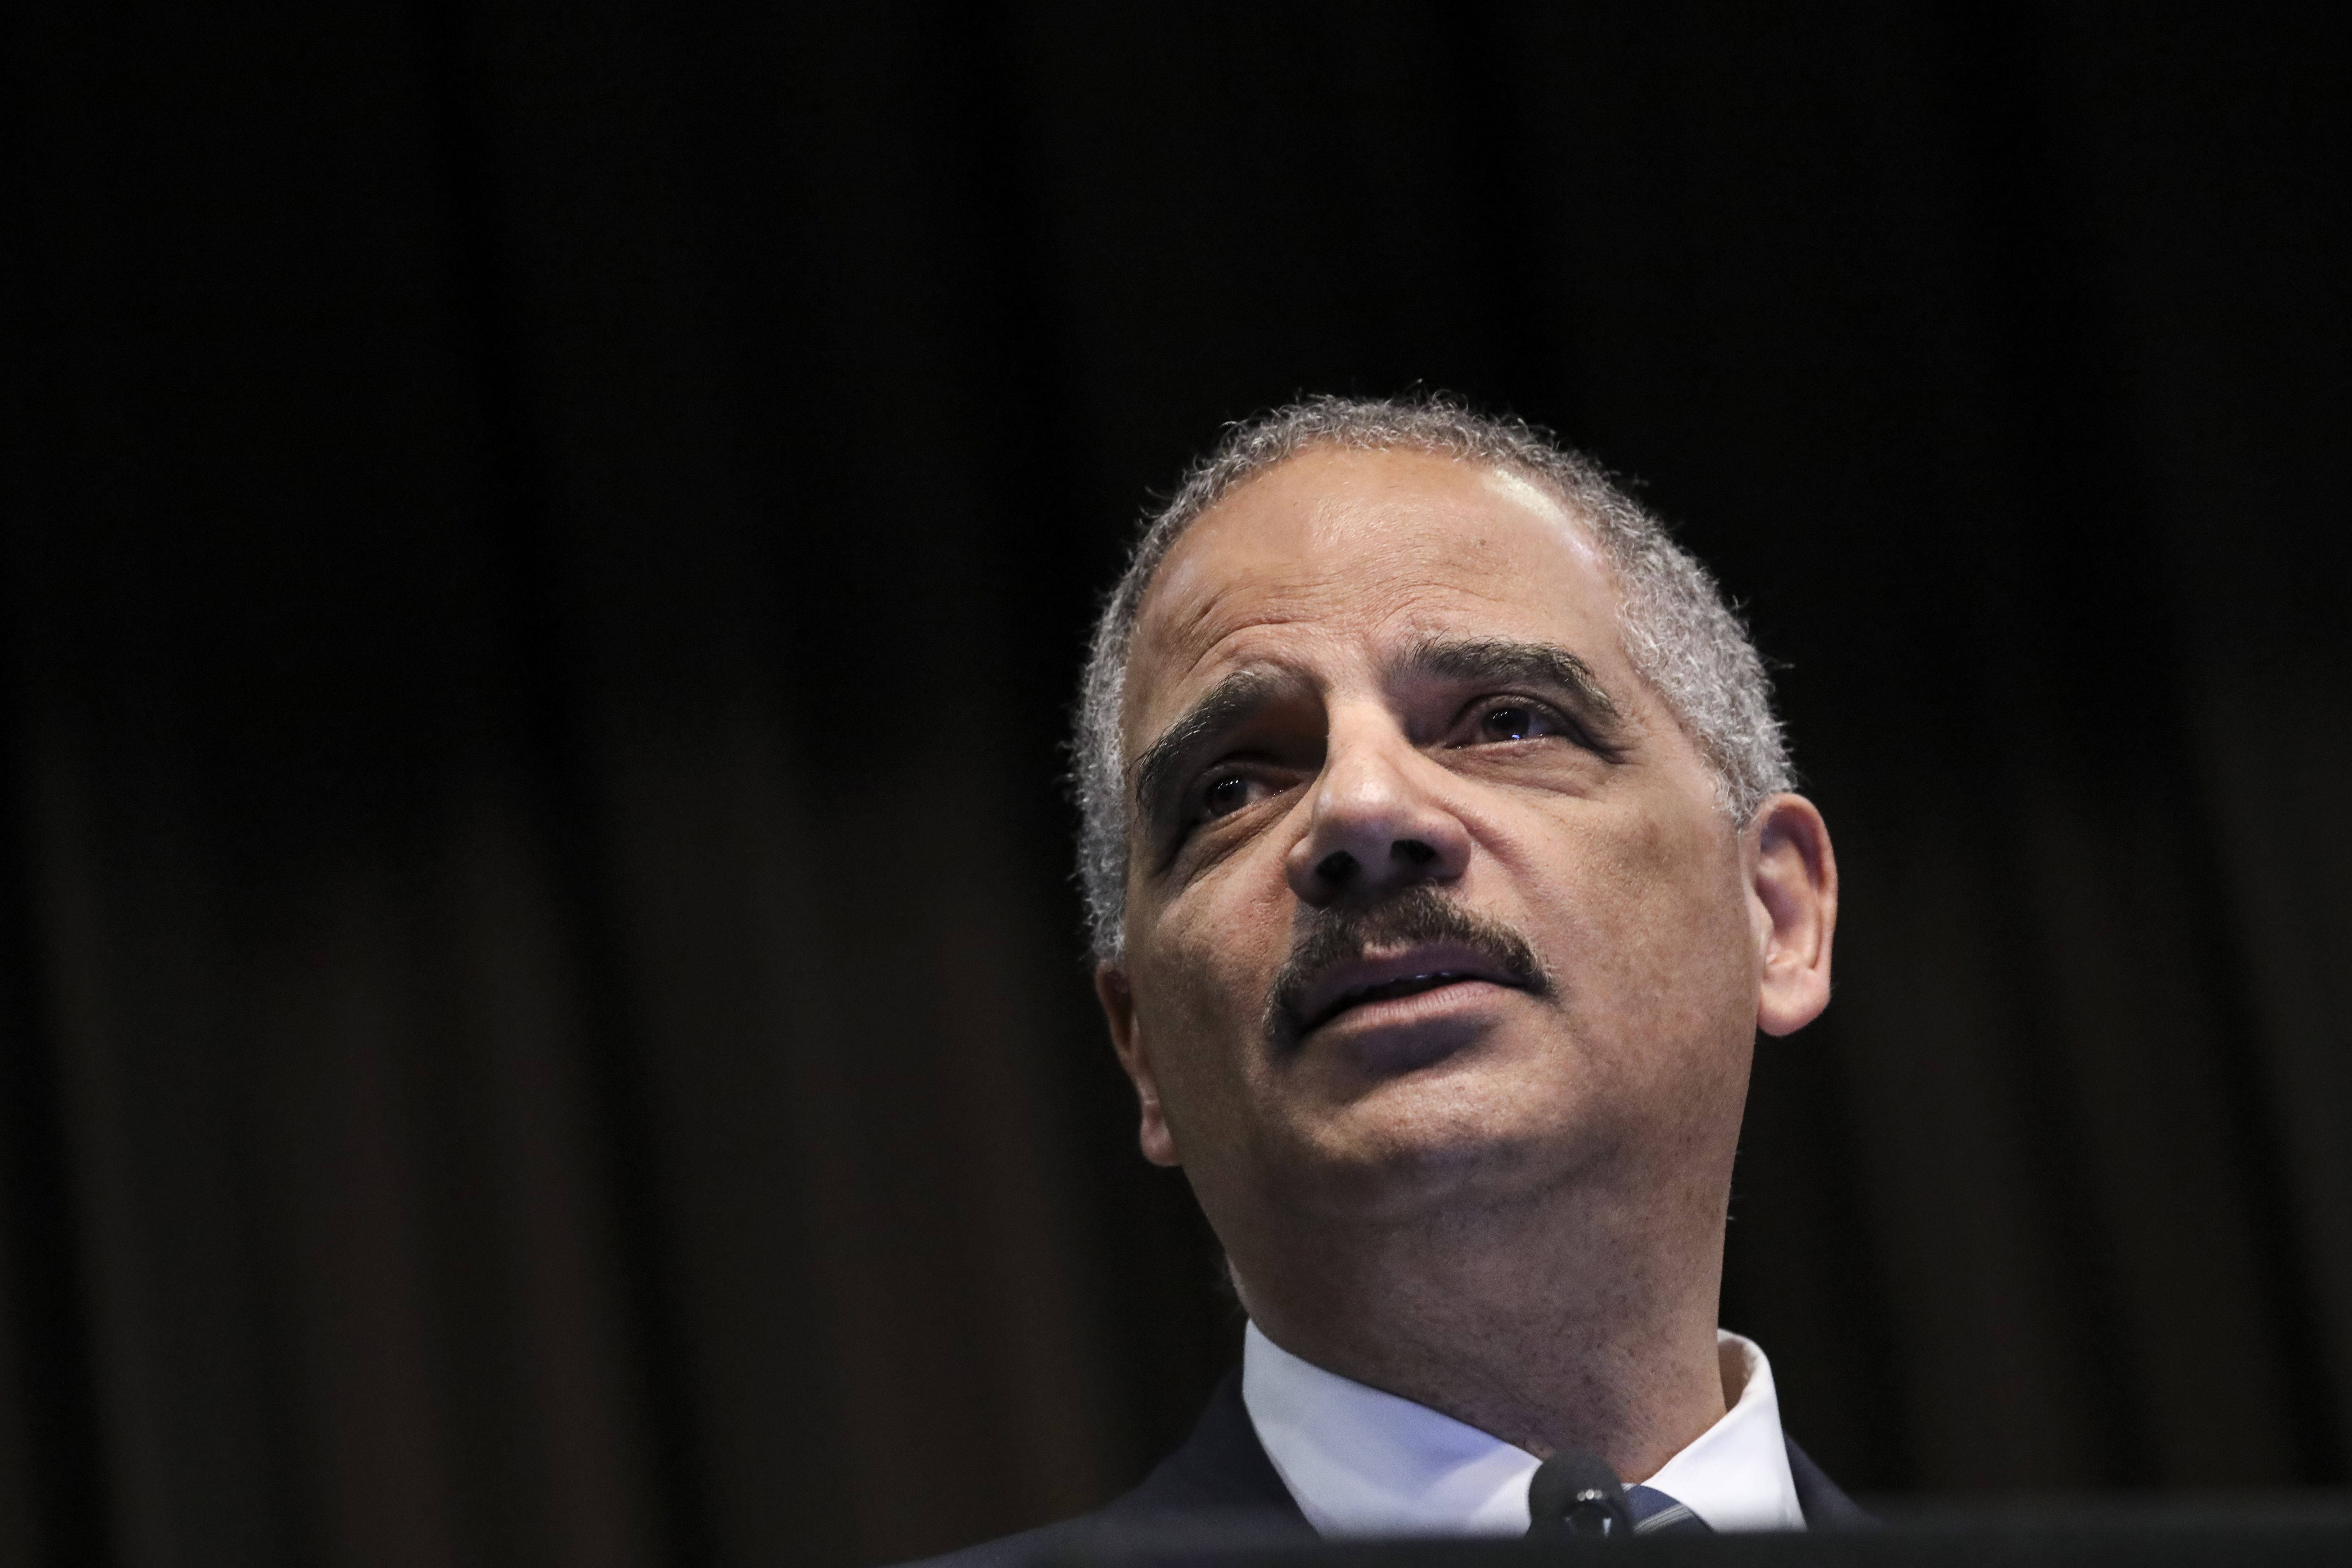 Former U.S. Attorney General Eric Holder speaks at the National Action Network's annual convention, April 3, 2019 in New York City. (Drew Angerer/Getty Images)